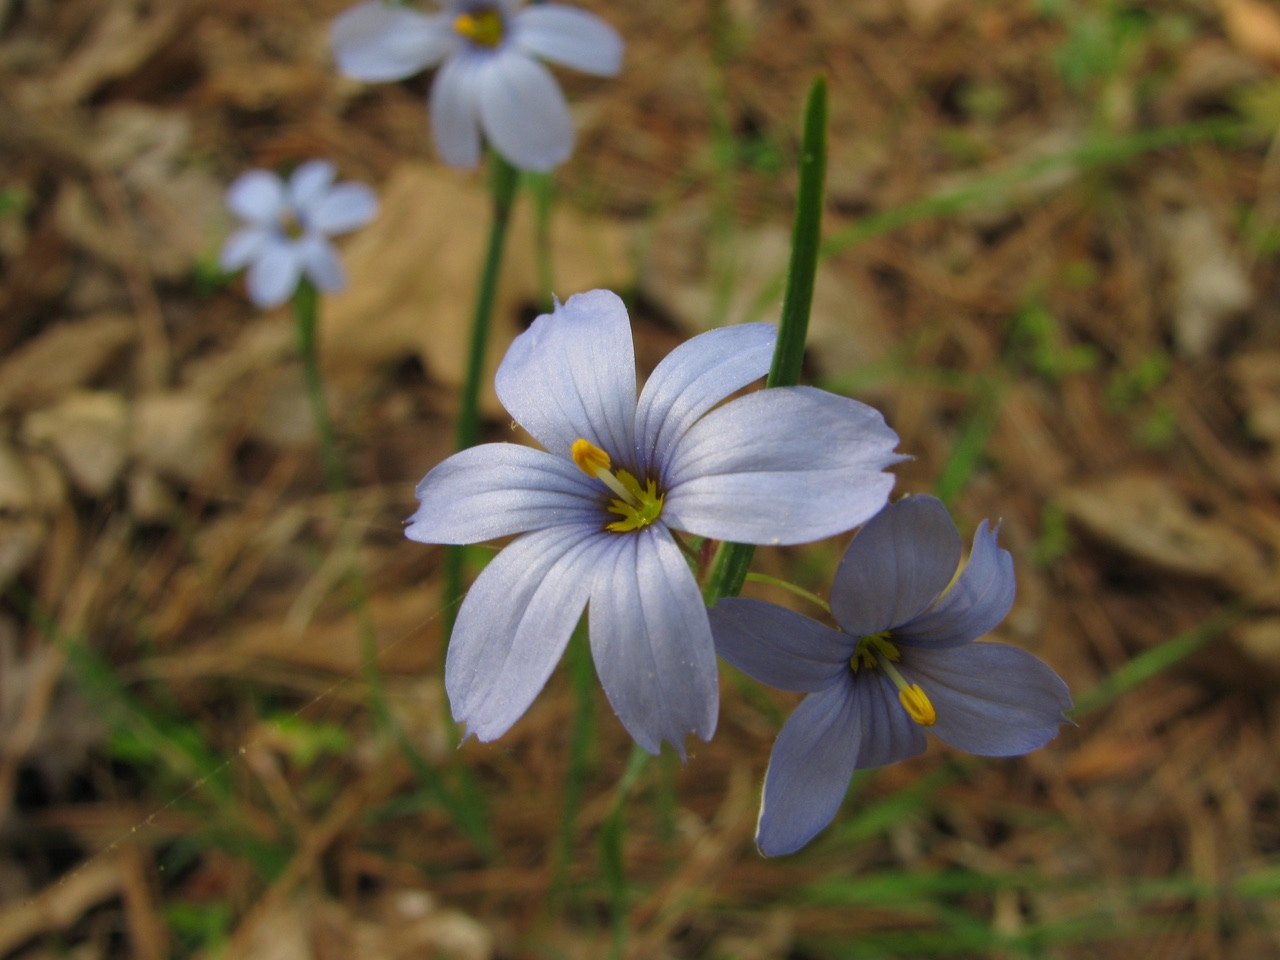 The Scientific Name is Sisyrinchium angustifolium. You will likely hear them called Narrowleaf Blue-eyed grass. This picture shows the Usually one to two flowers on the distally branched inflorescence and long flower pedicels of Sisyrinchium angustifolium